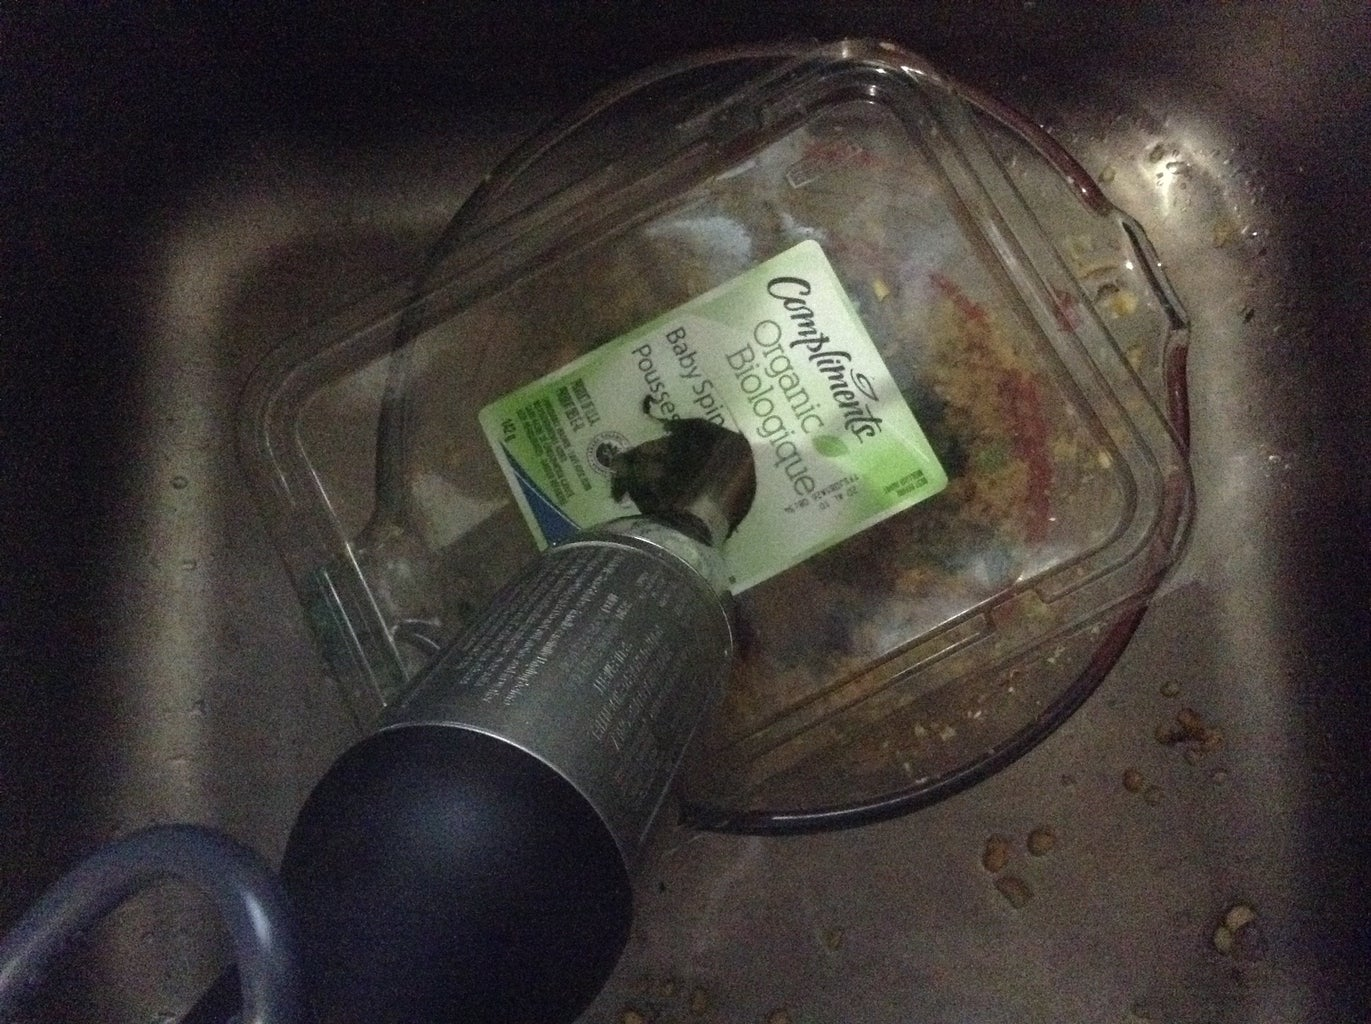 Ms MacGyver Doesn't Need a Food Processor